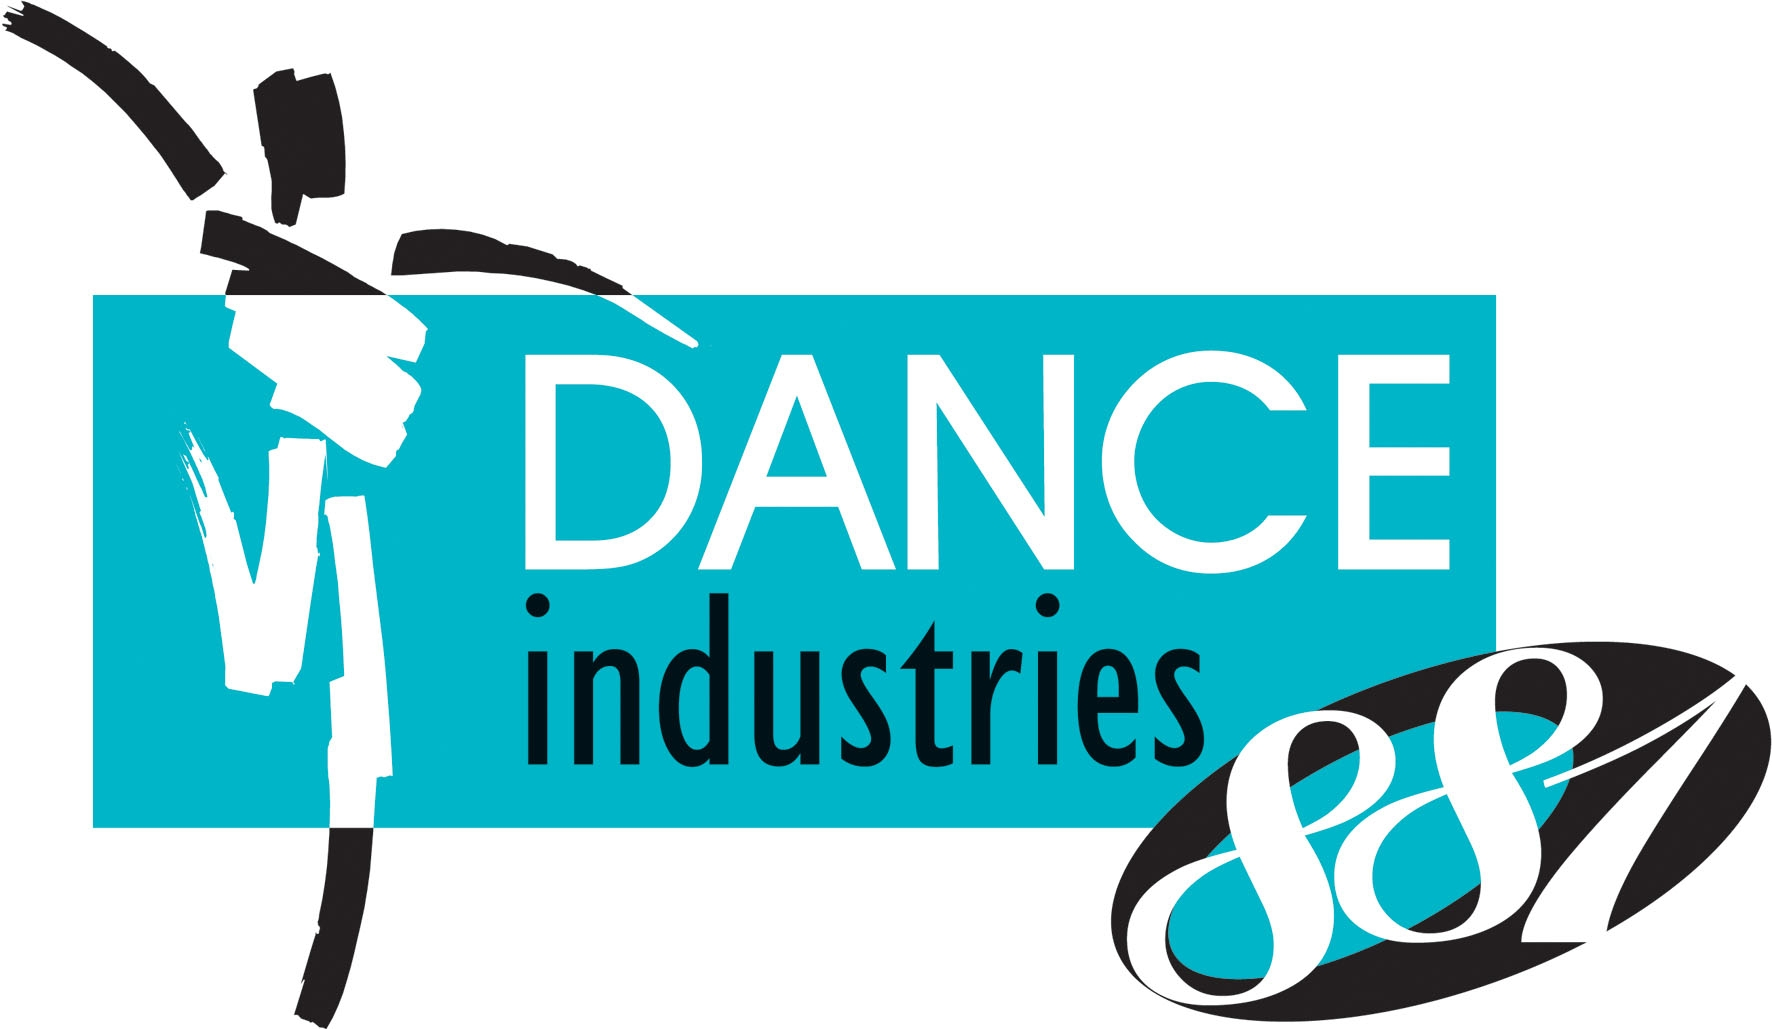 Dance Industries 881 - 16th Annual Production 2015